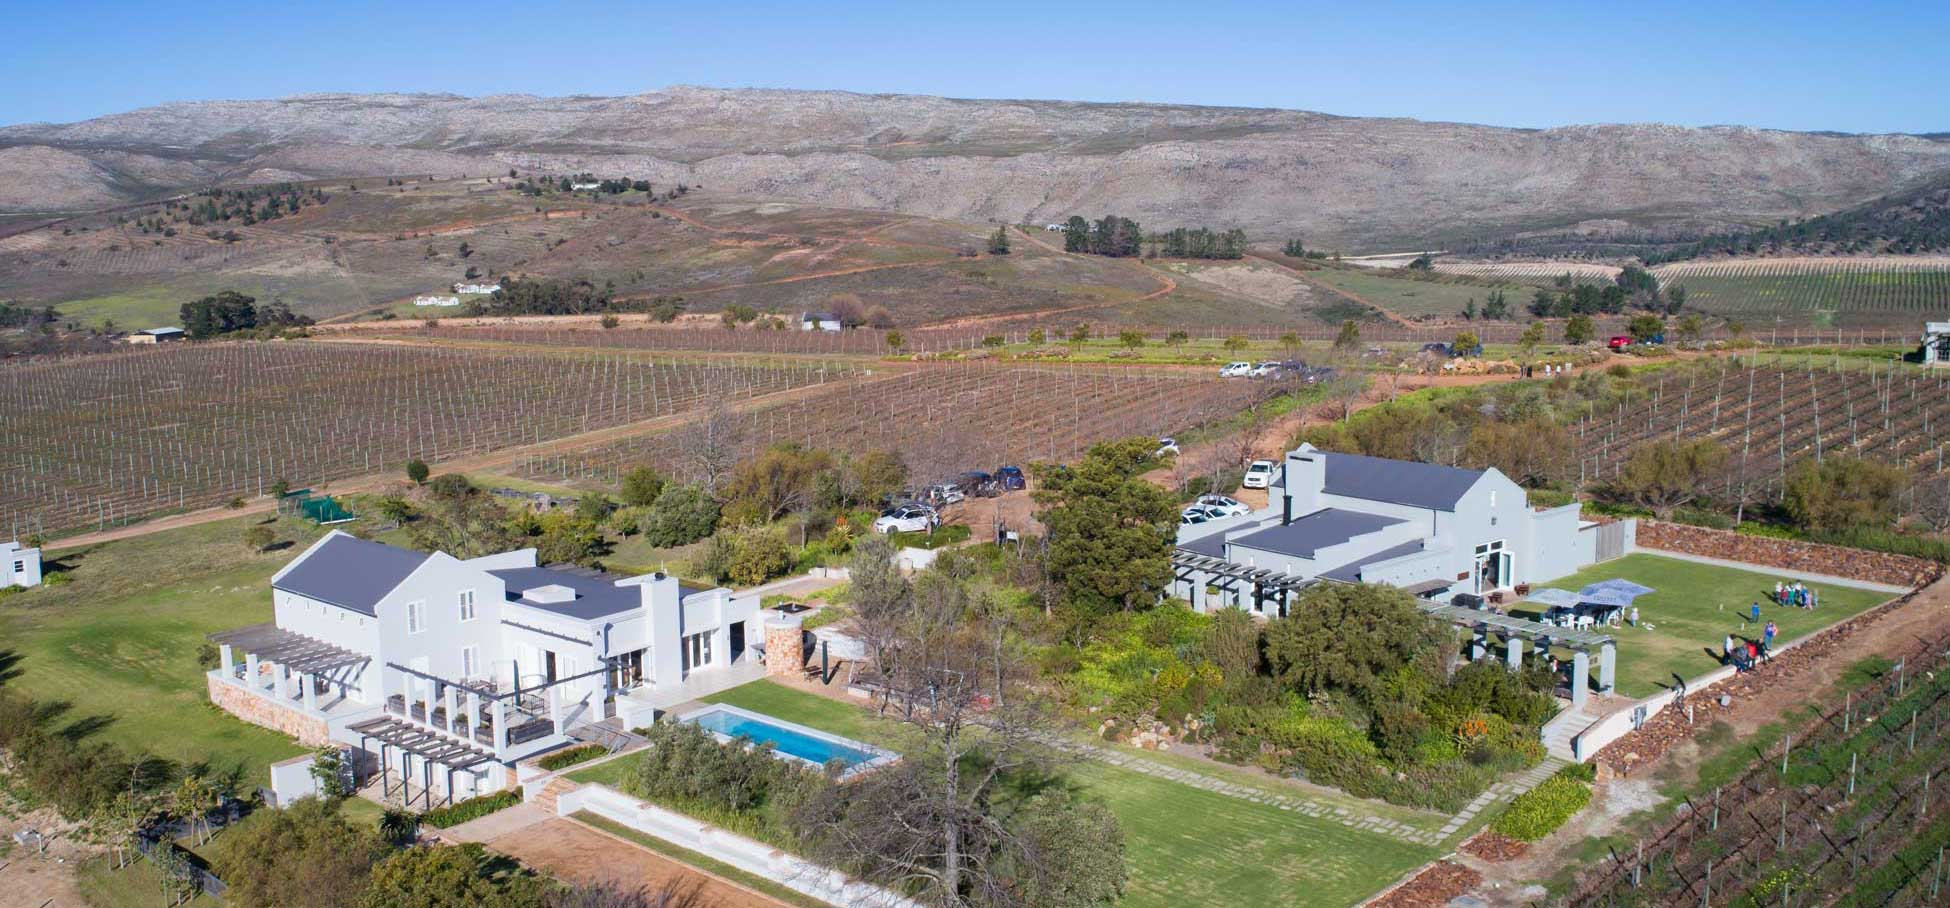 Blue Mountain Trail - South Hill Vineyards